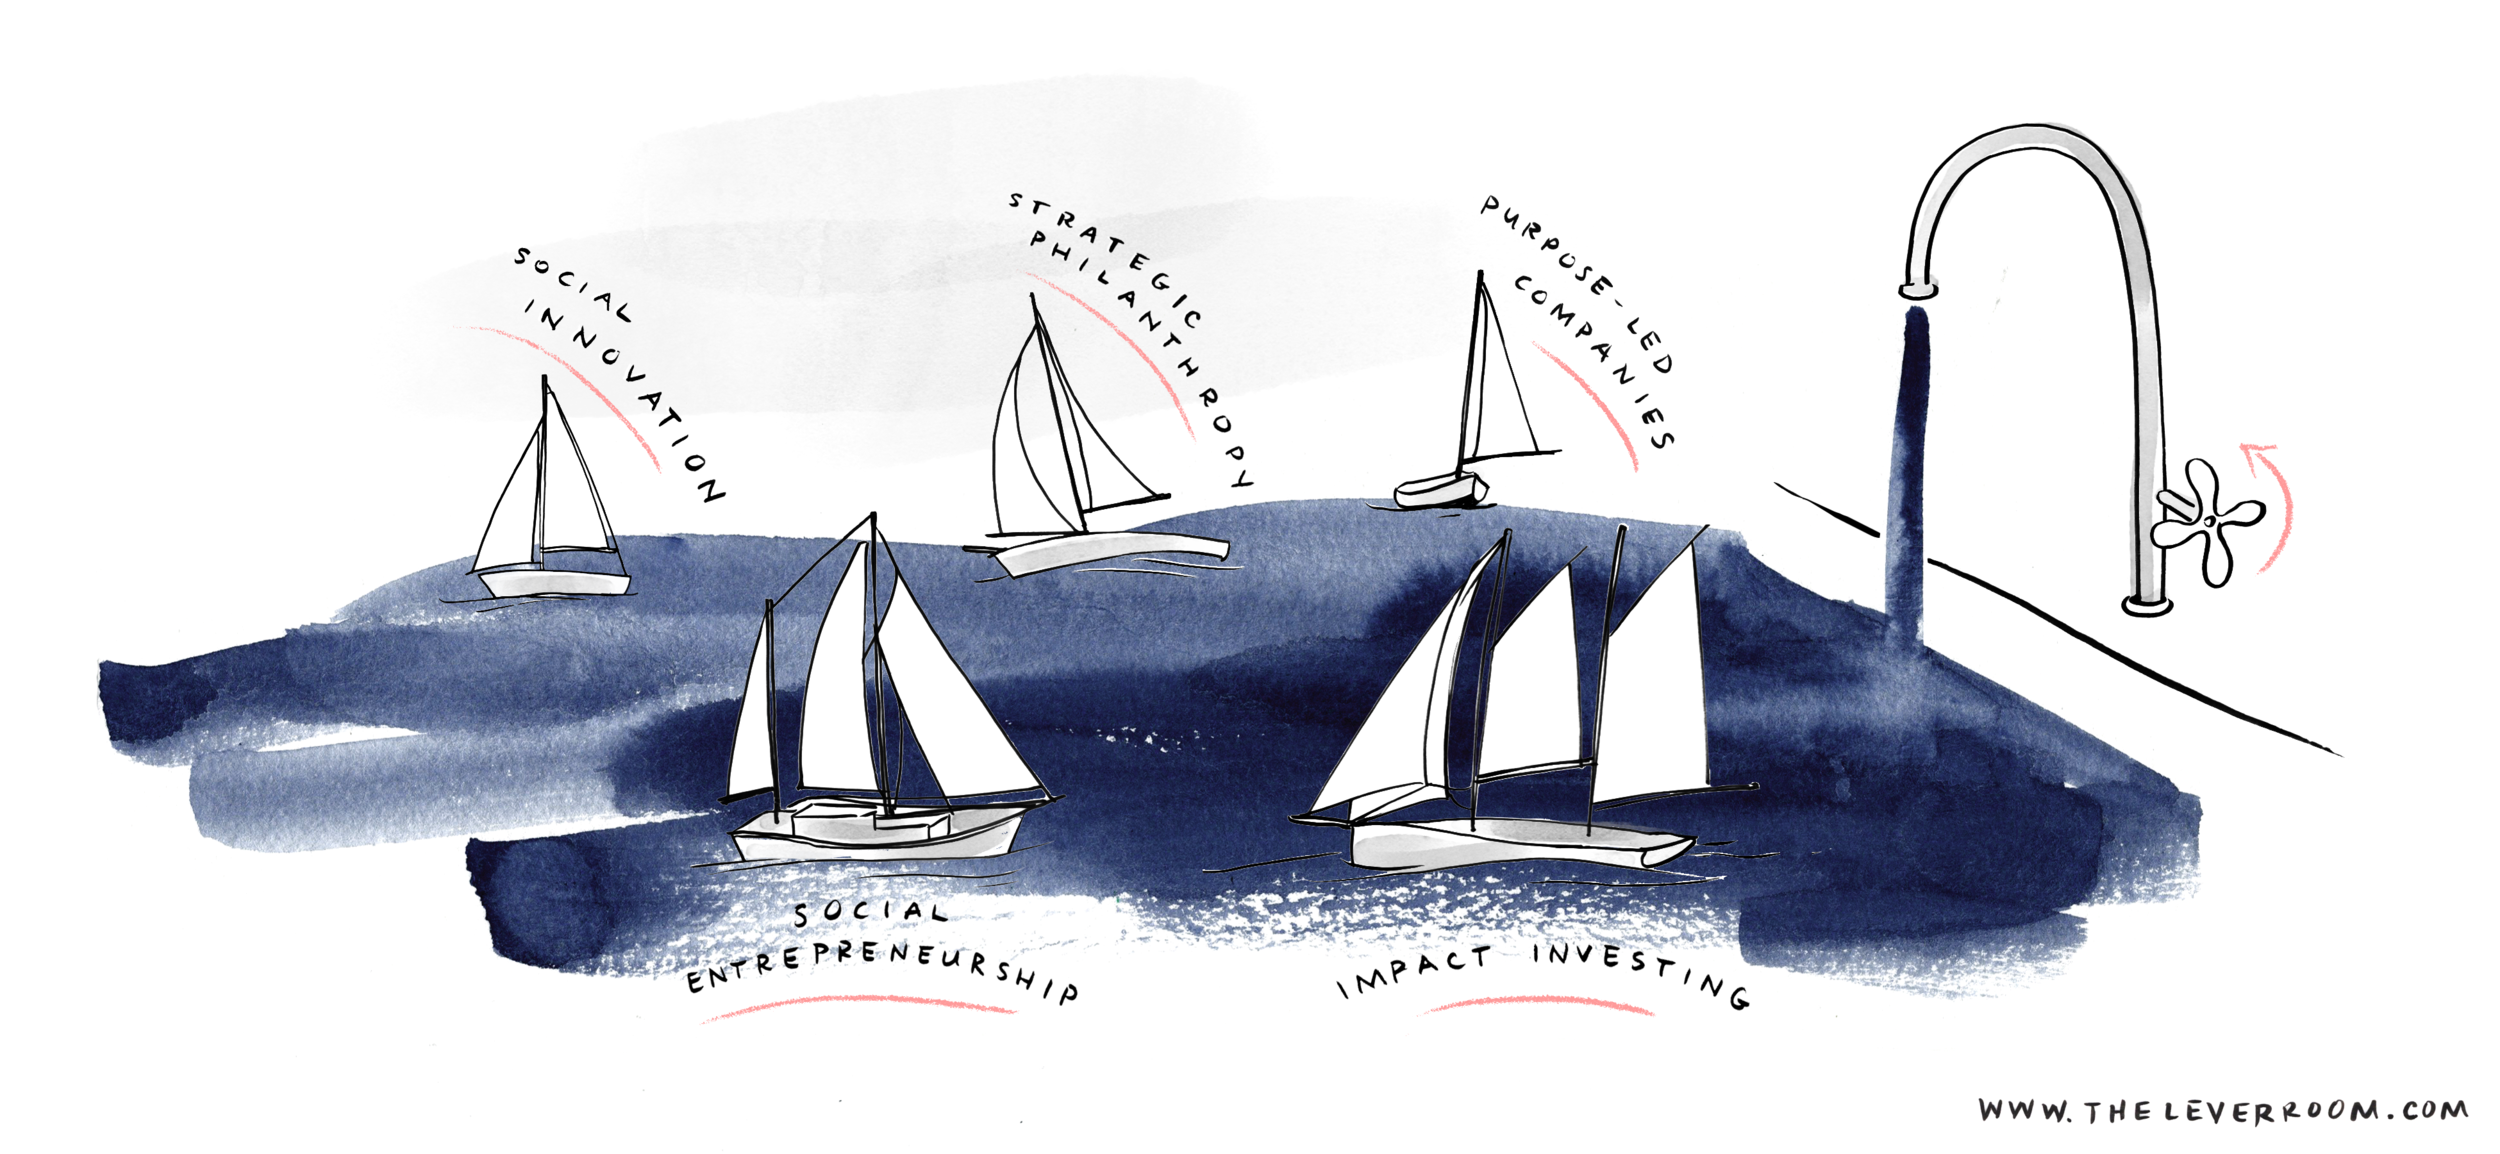 Sailboats-illustration_The-Lever-Room_Erin-Ellis .png